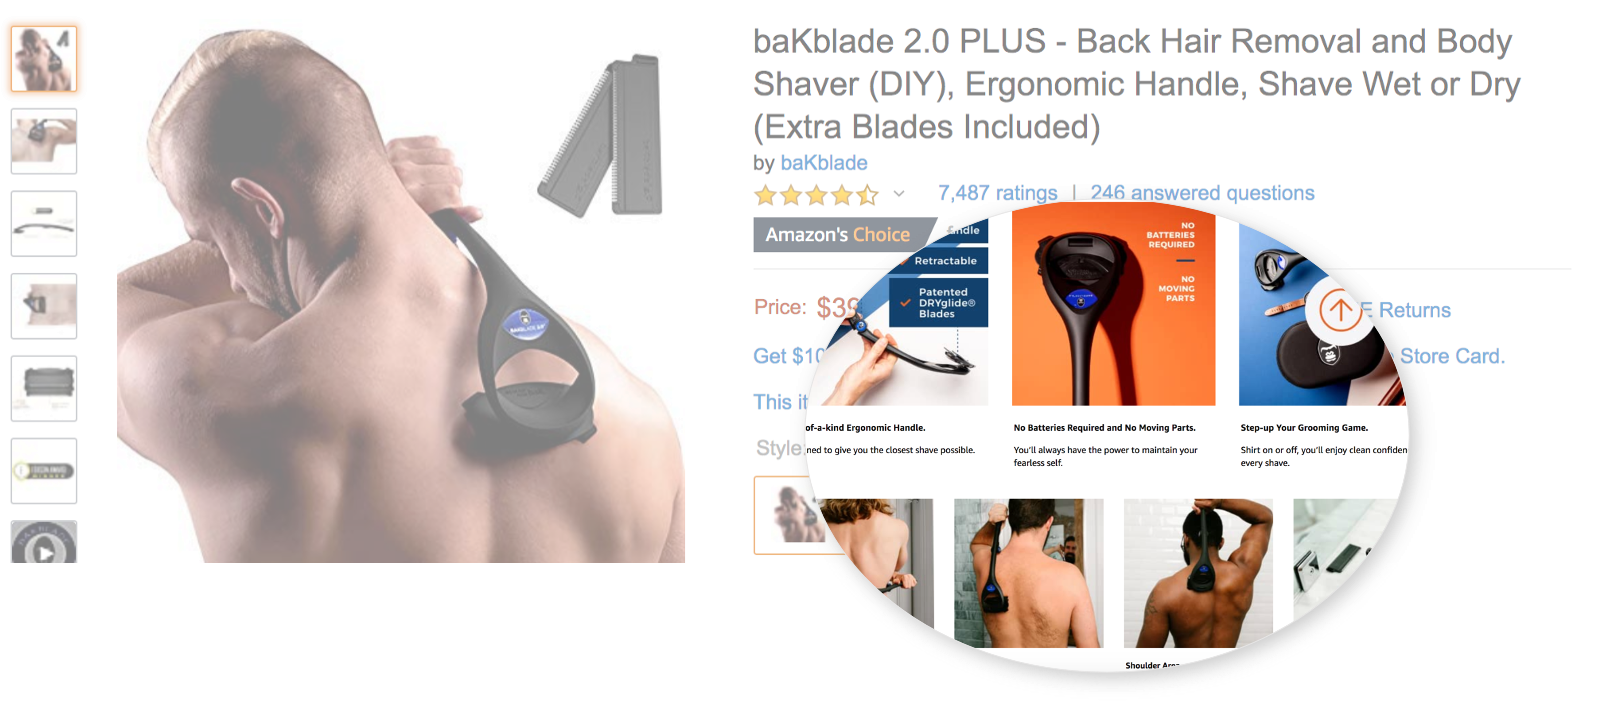 bakblade amazon listing with enhanced brand content